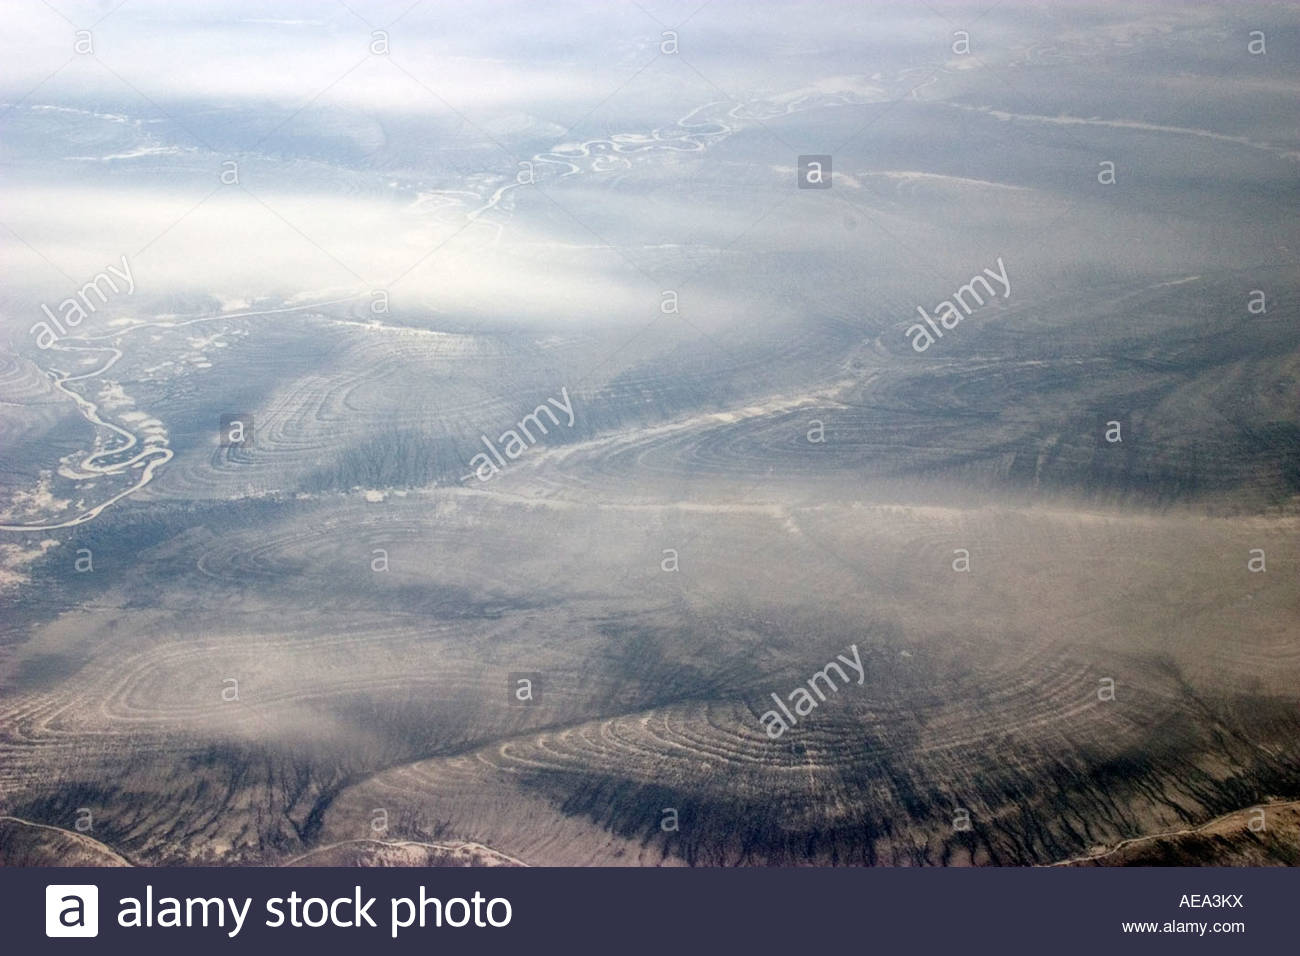 North eastern Russia, Siberia. Aerial view from aircraft of Russian tundra, above the artic circle, lots of scatted - Stock Image